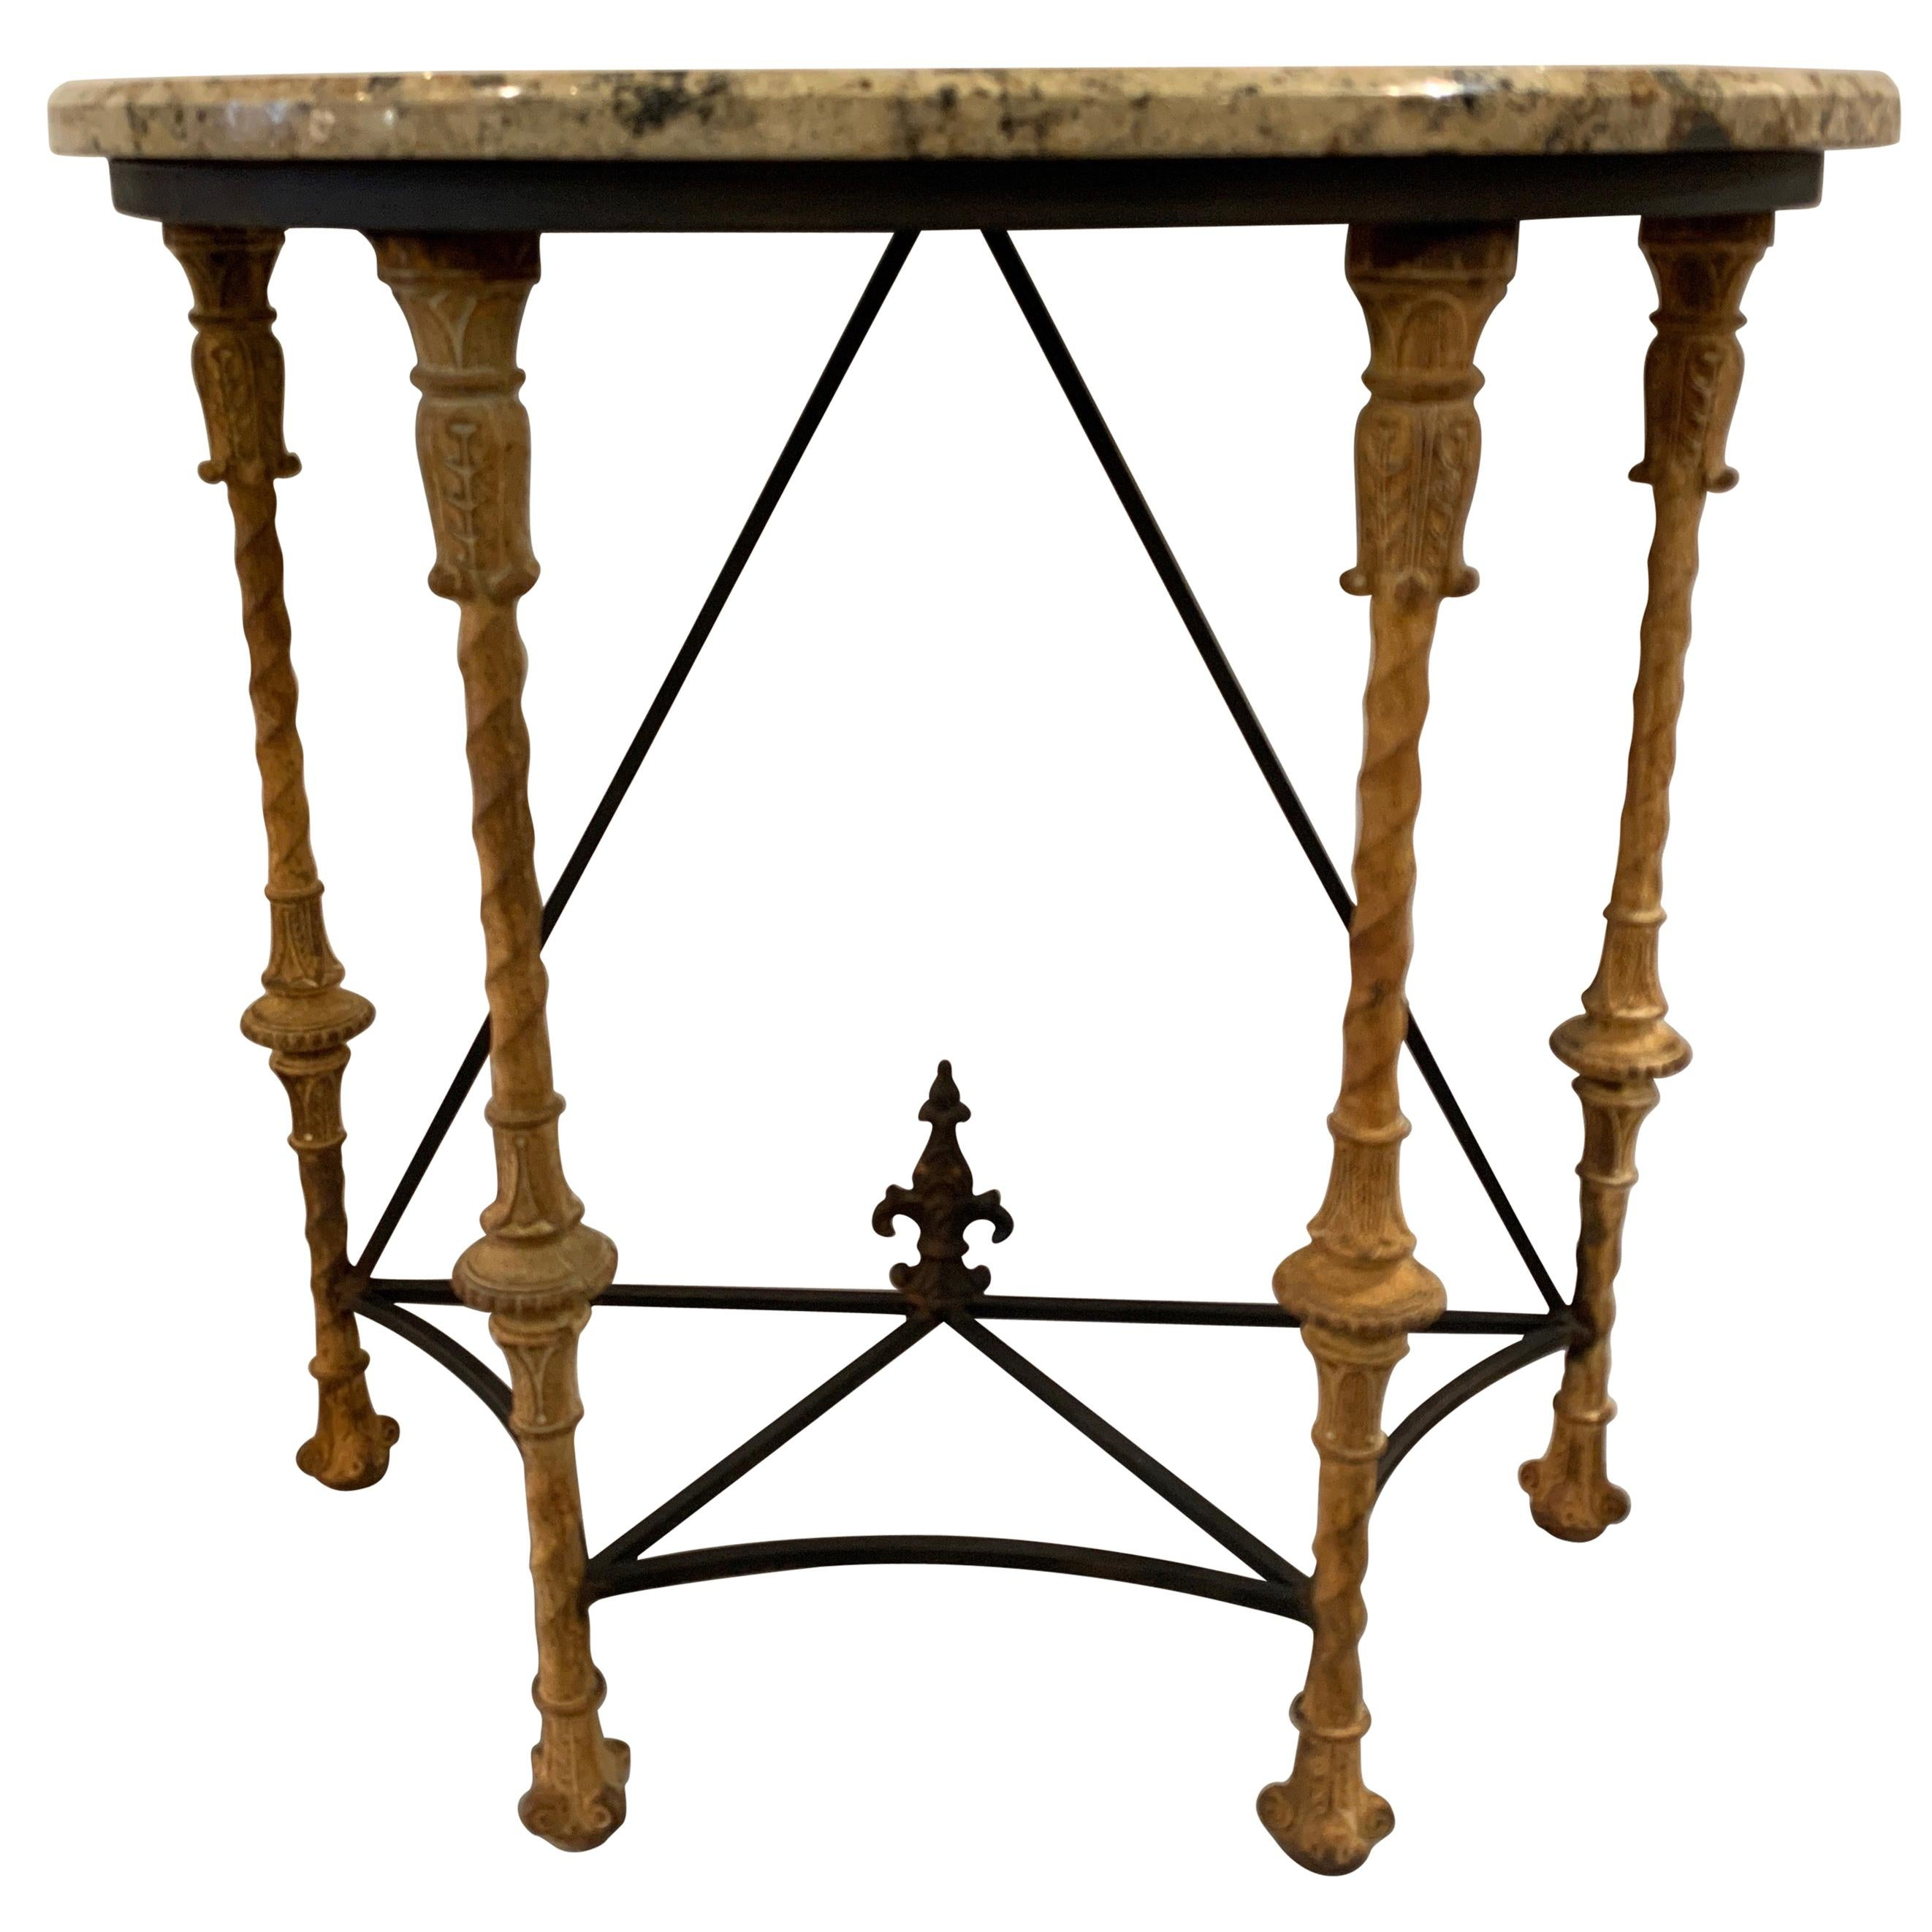 Midcentury Demilune Table with Ornate Wrought Iron Base & Italian Marble Top